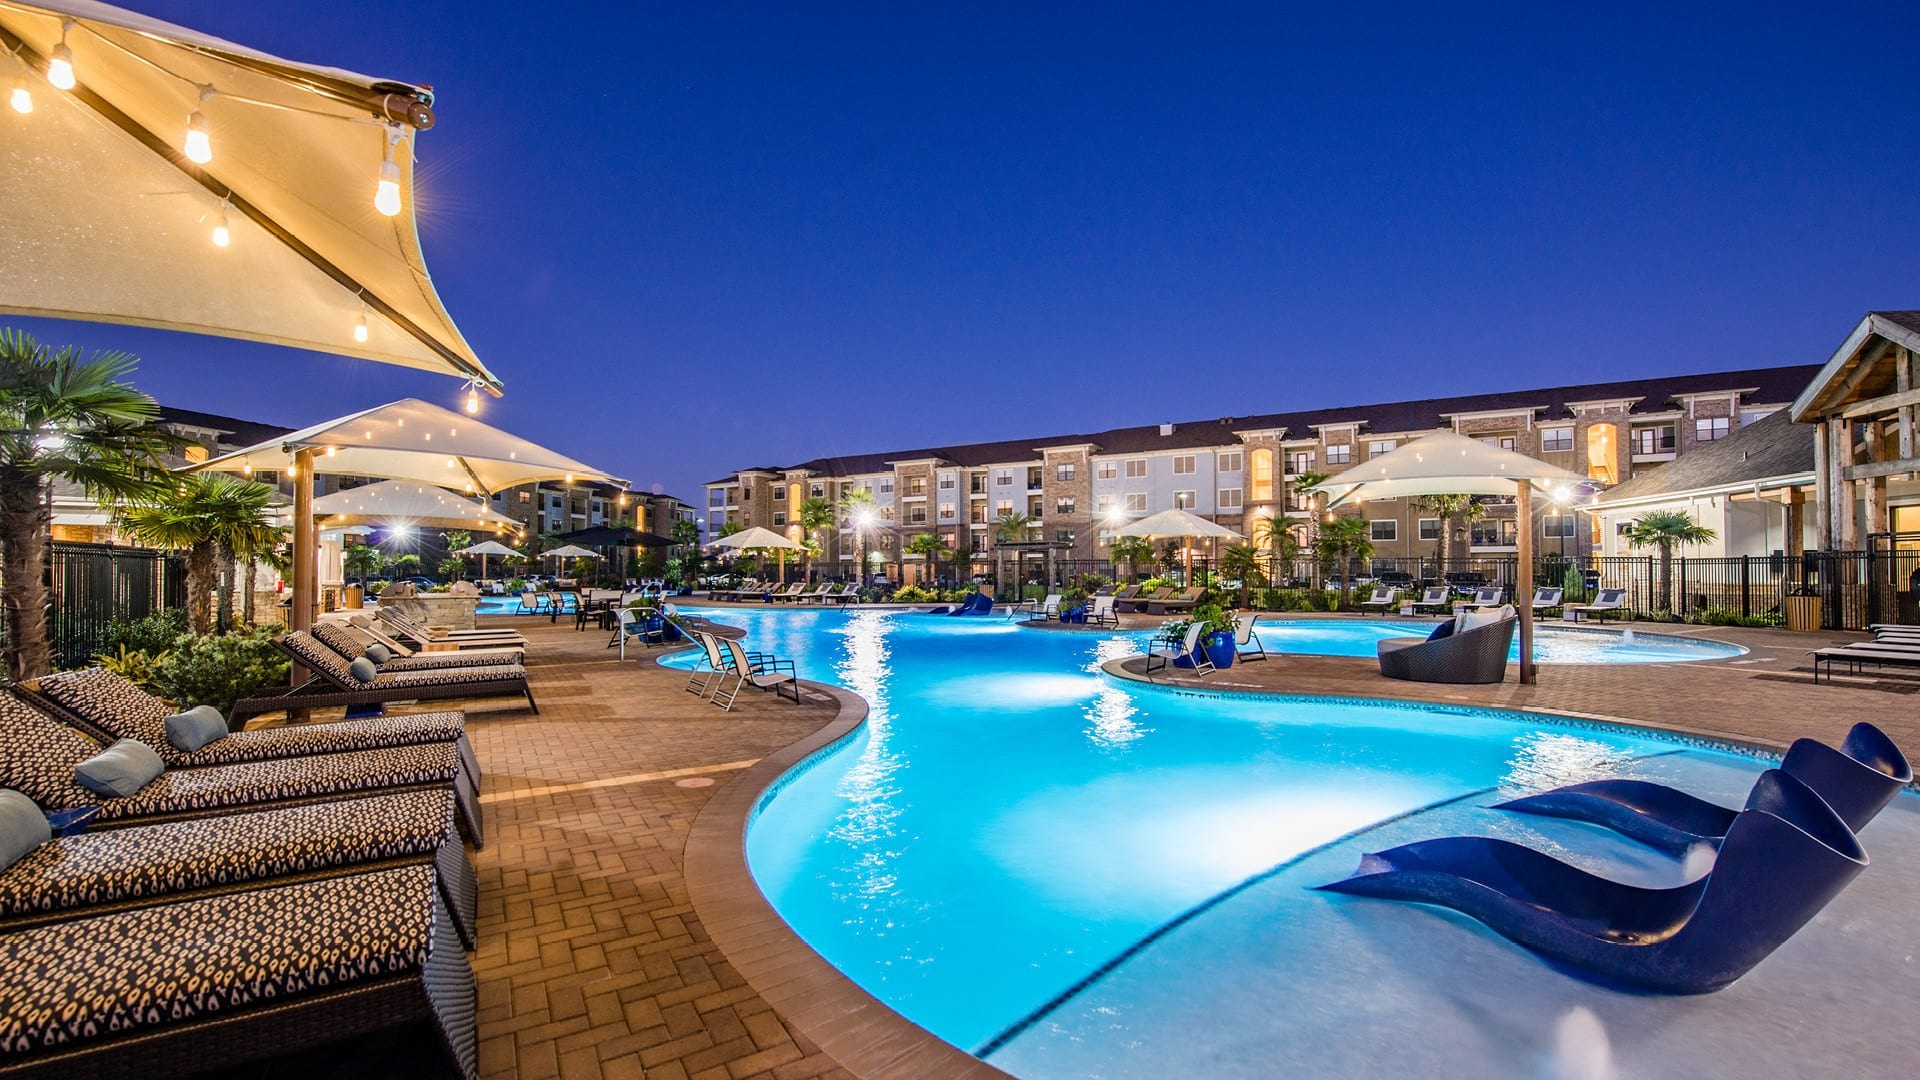 Resort style apartment pool at Cortland Spring Plaza